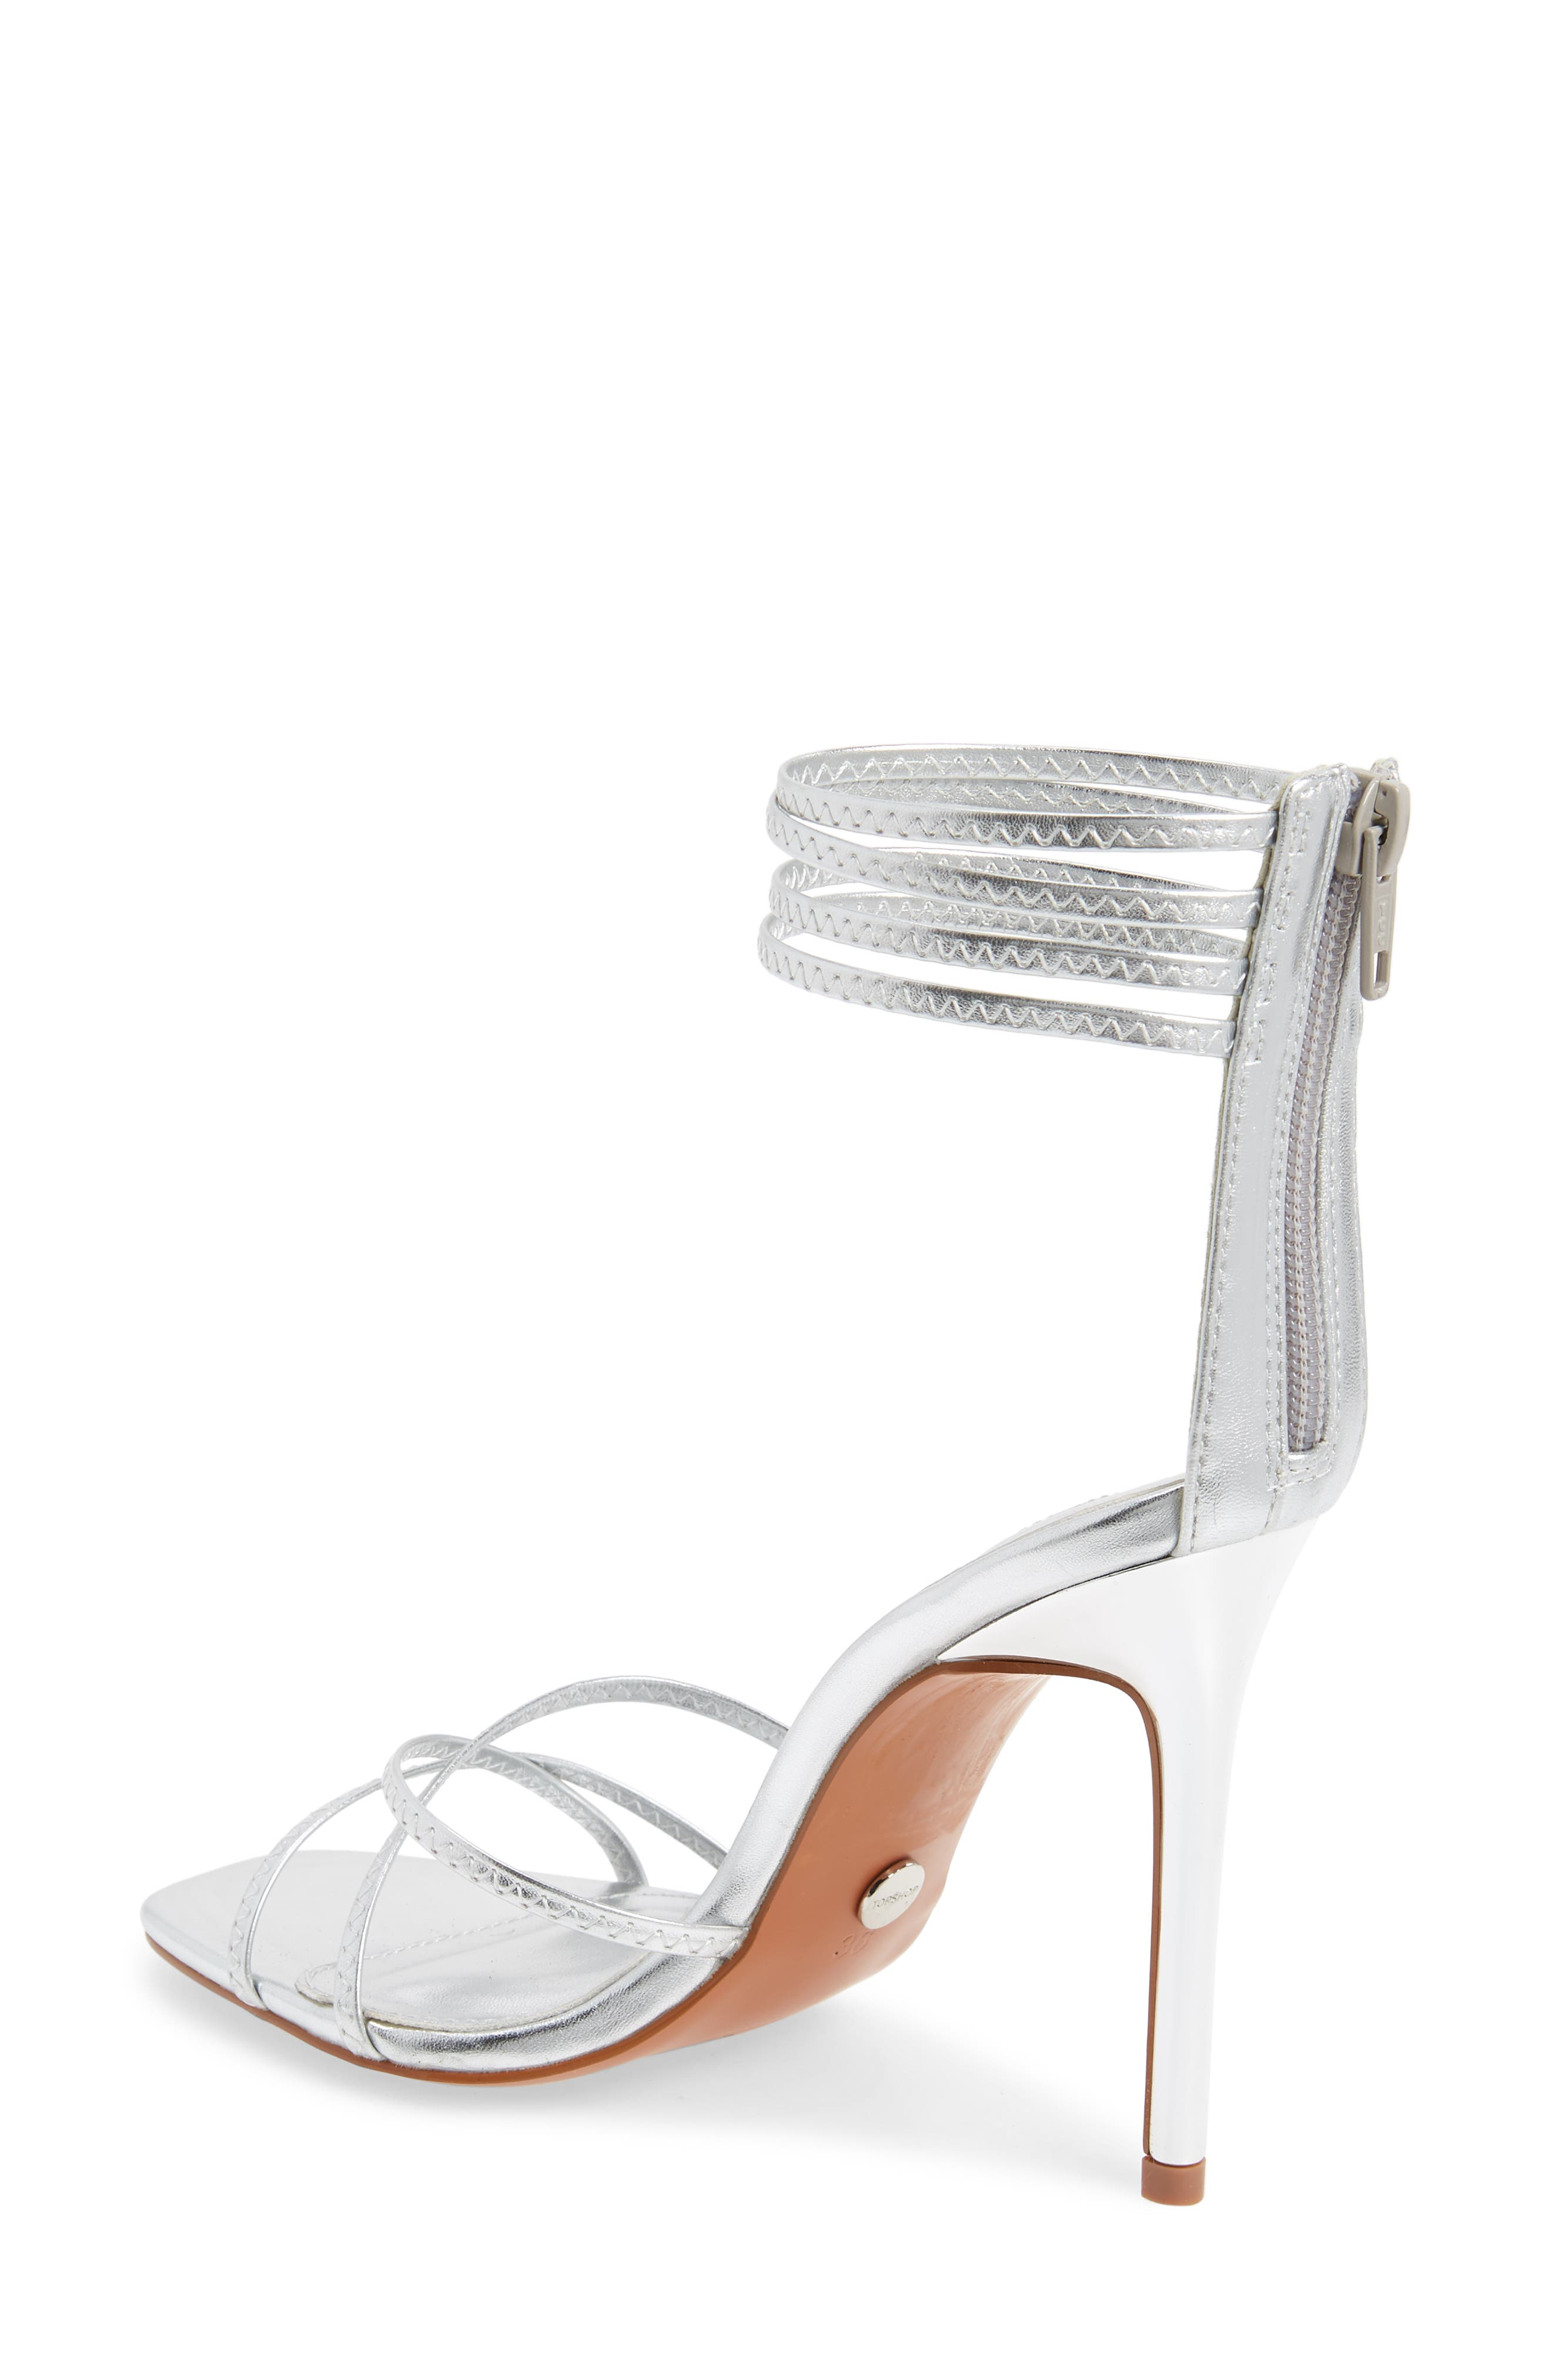 TOPSHOP, Rich Tall Strappy Sandal, Alternate thumbnail 2, color, SILVER